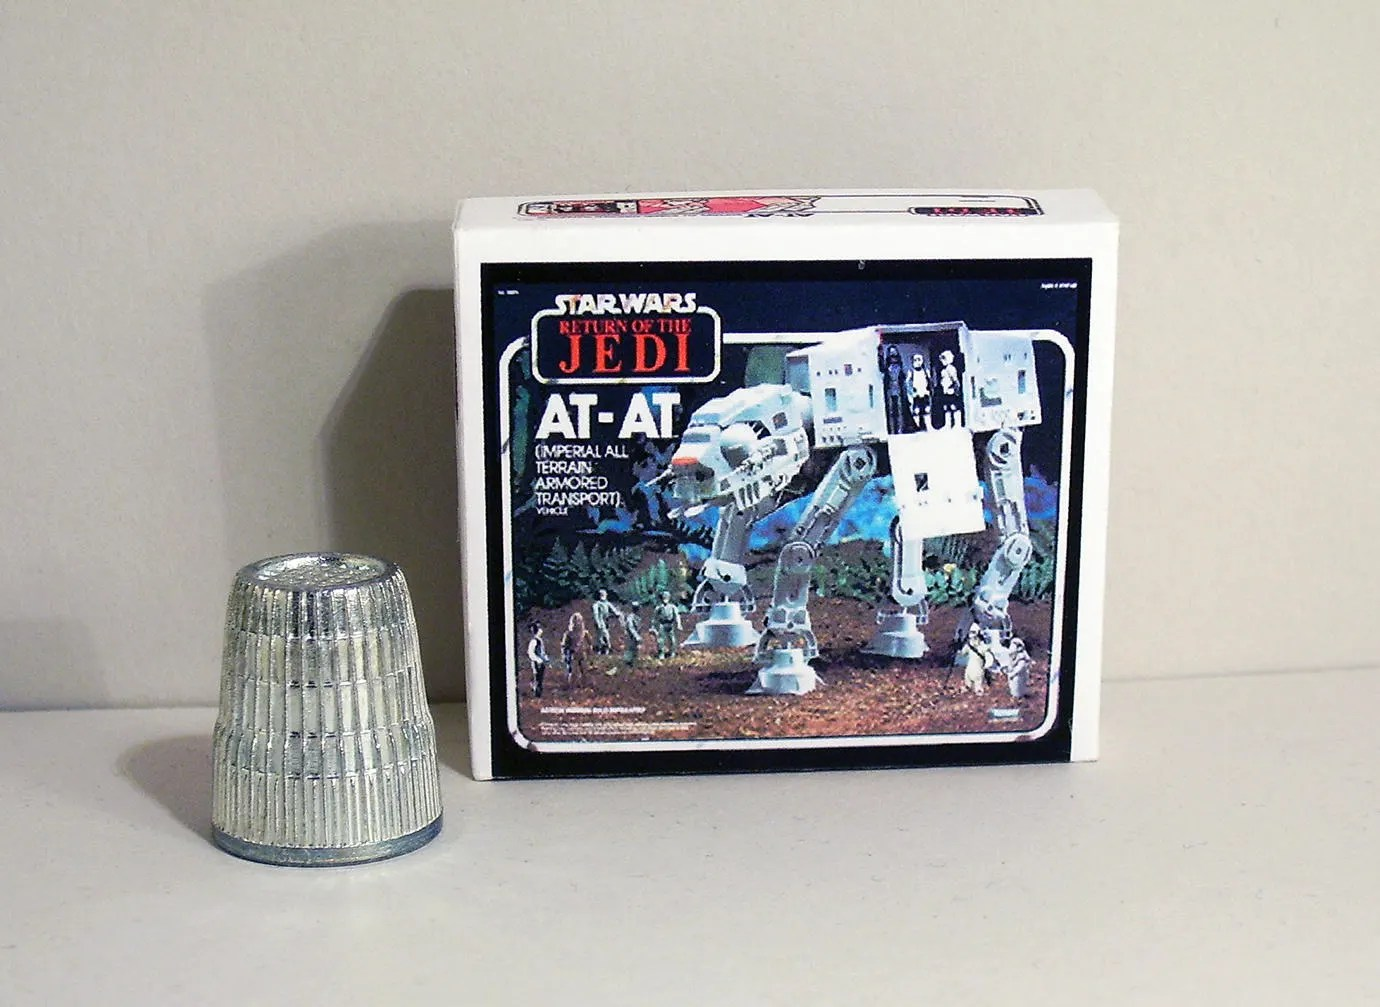 Star Wars House Items Star Wars At At Box Dollhouse Miniature 1 12 Scale Dollhouse Accessory 1970s 1980s Dollhouse Boy Toy Box Miniature Box Replica